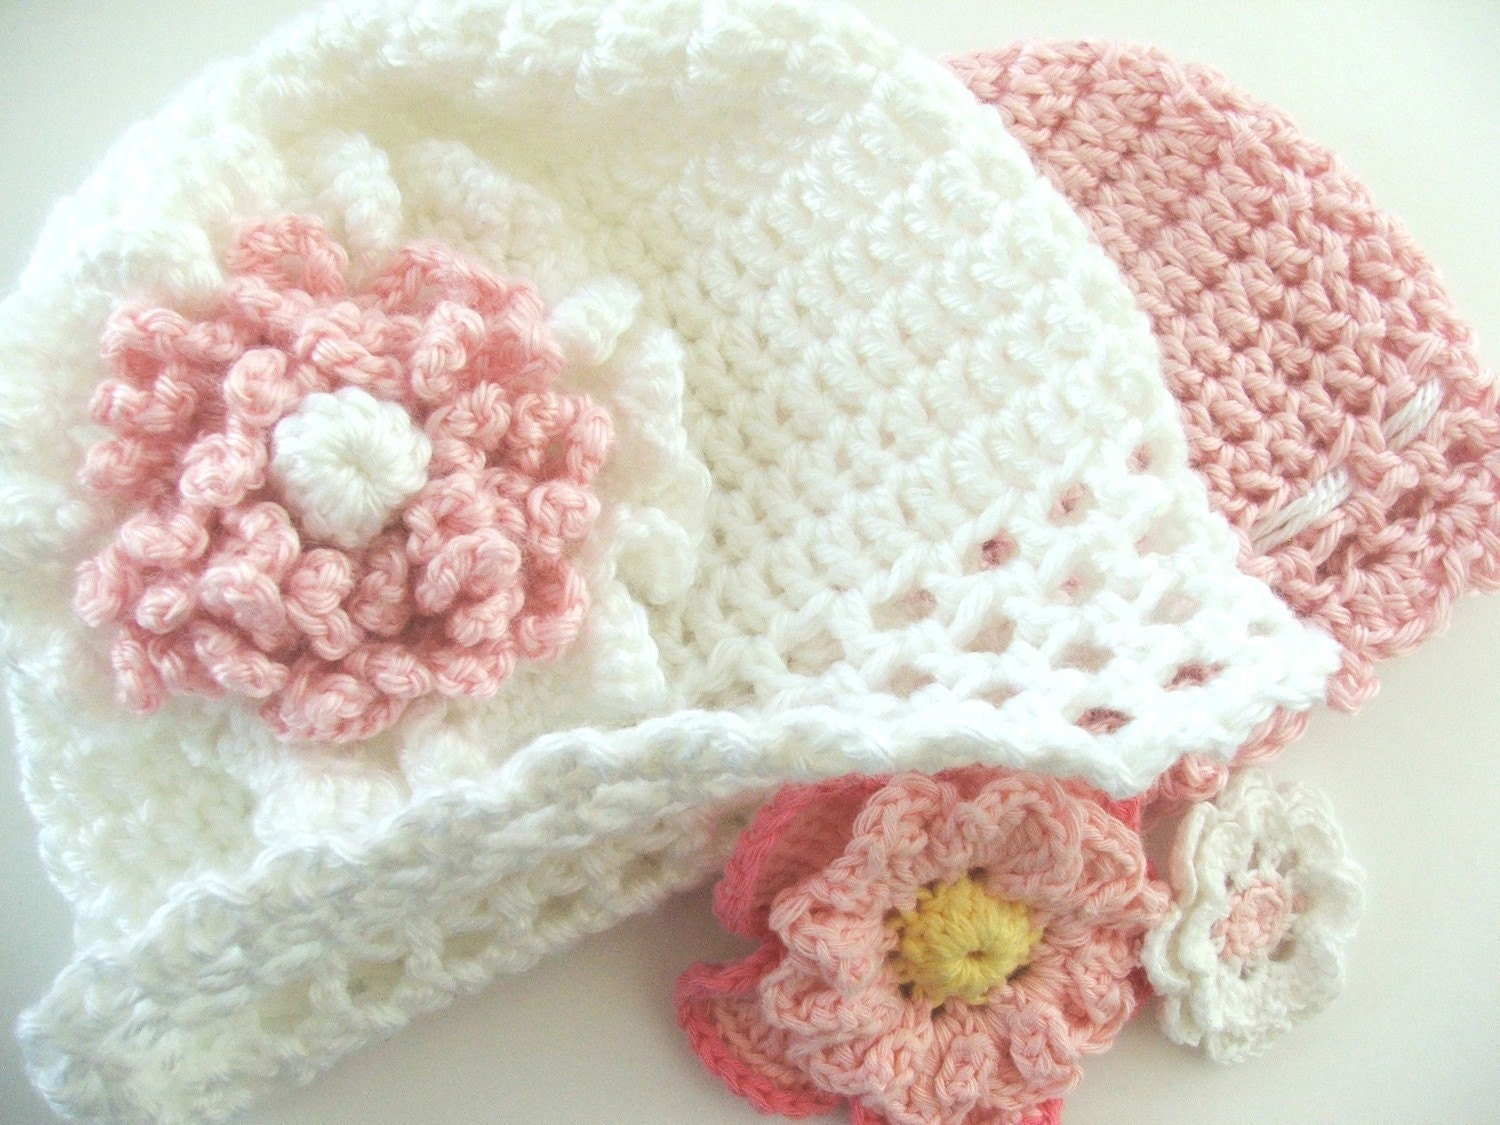 Easy Crochet Flower Patterns For Hats : Simple Baby Hat Crochet PATTERN Fast and Easy Instant